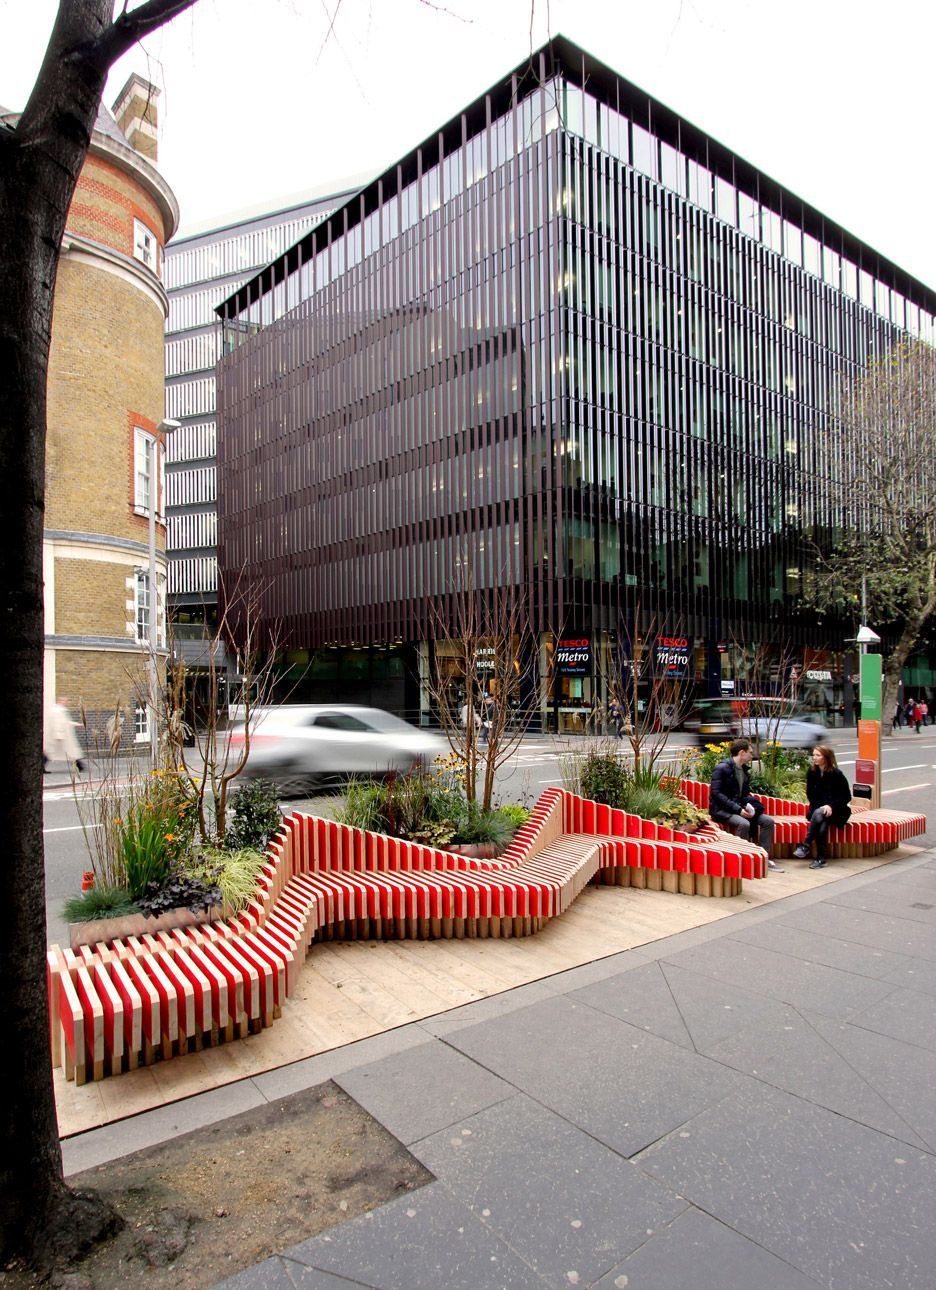 Parklet by WMB Studio adds greenery to London's streets ...